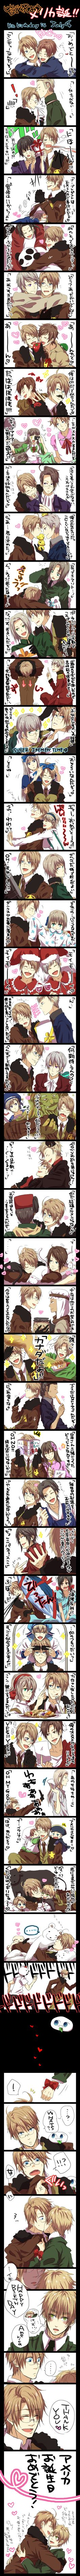 Anime, Birthday, Fran (FFXII), Axis Powers: Hetalia, Seychelles, Taiwan, Japan